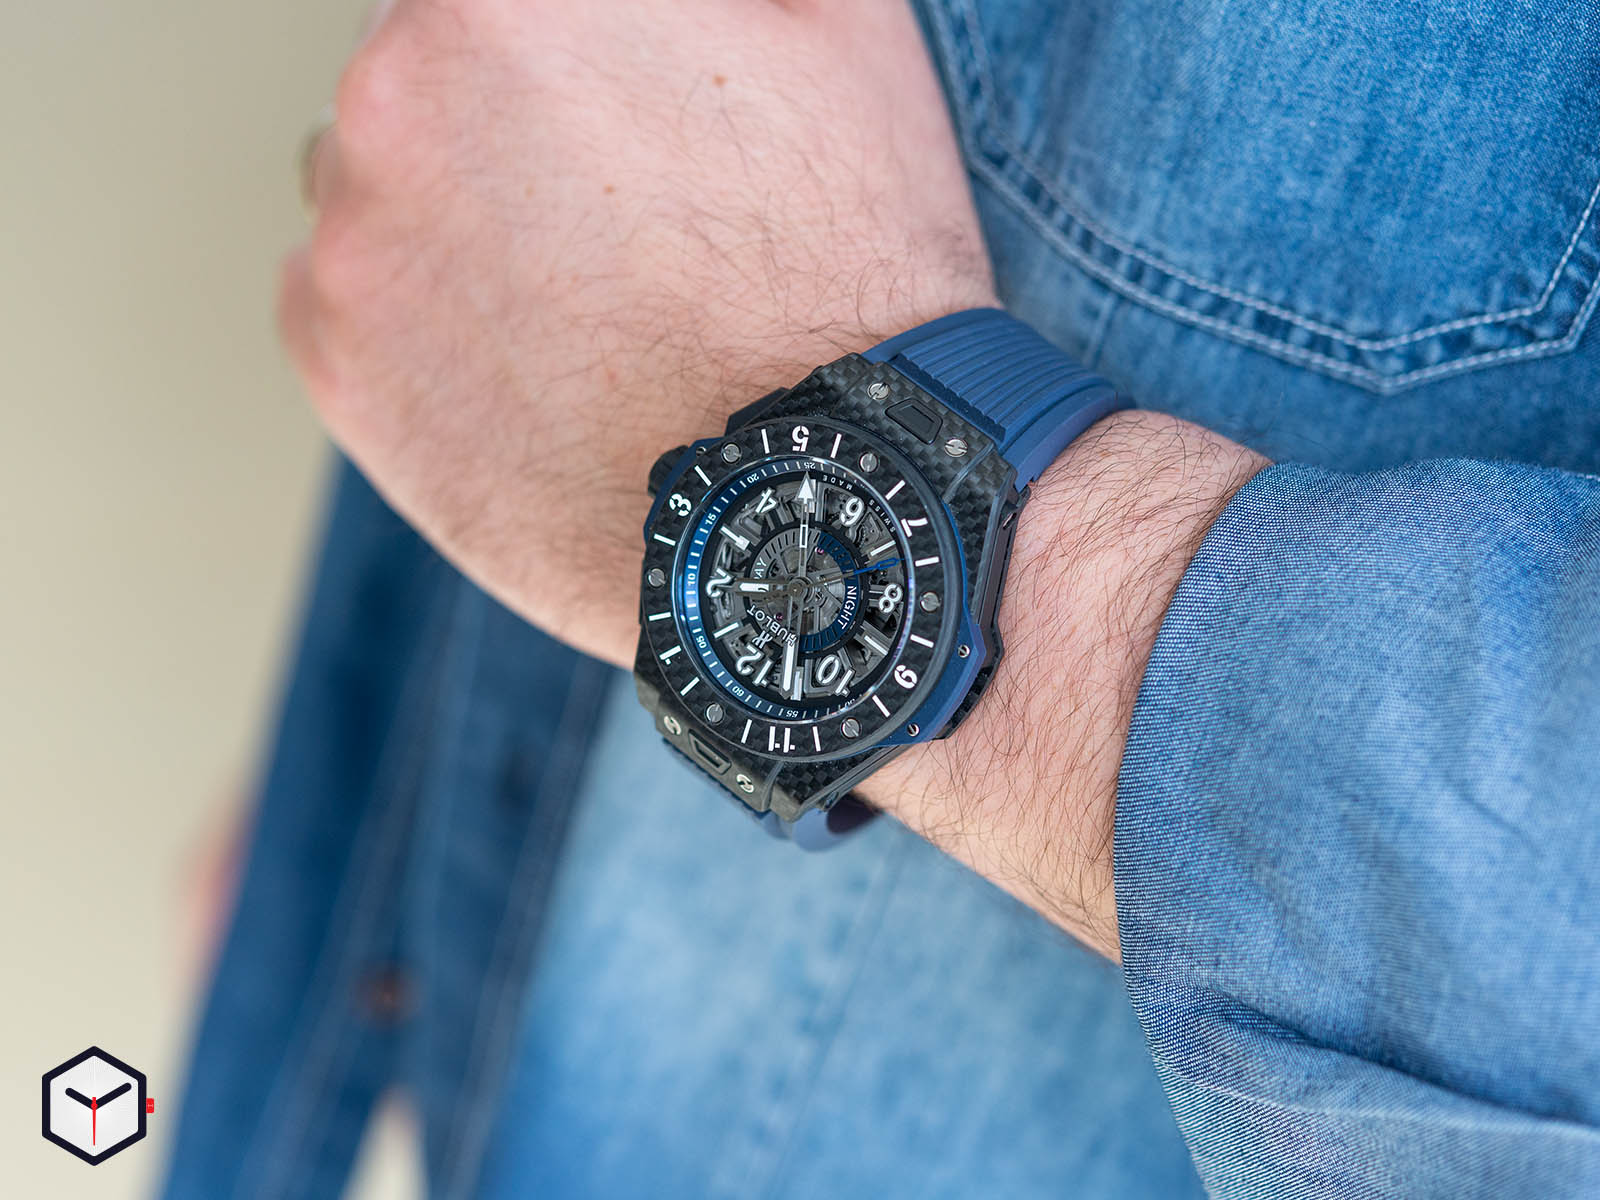 471-qx-7127-rx-hublot-big-bang-unico-gmt-carbon-9.jpg